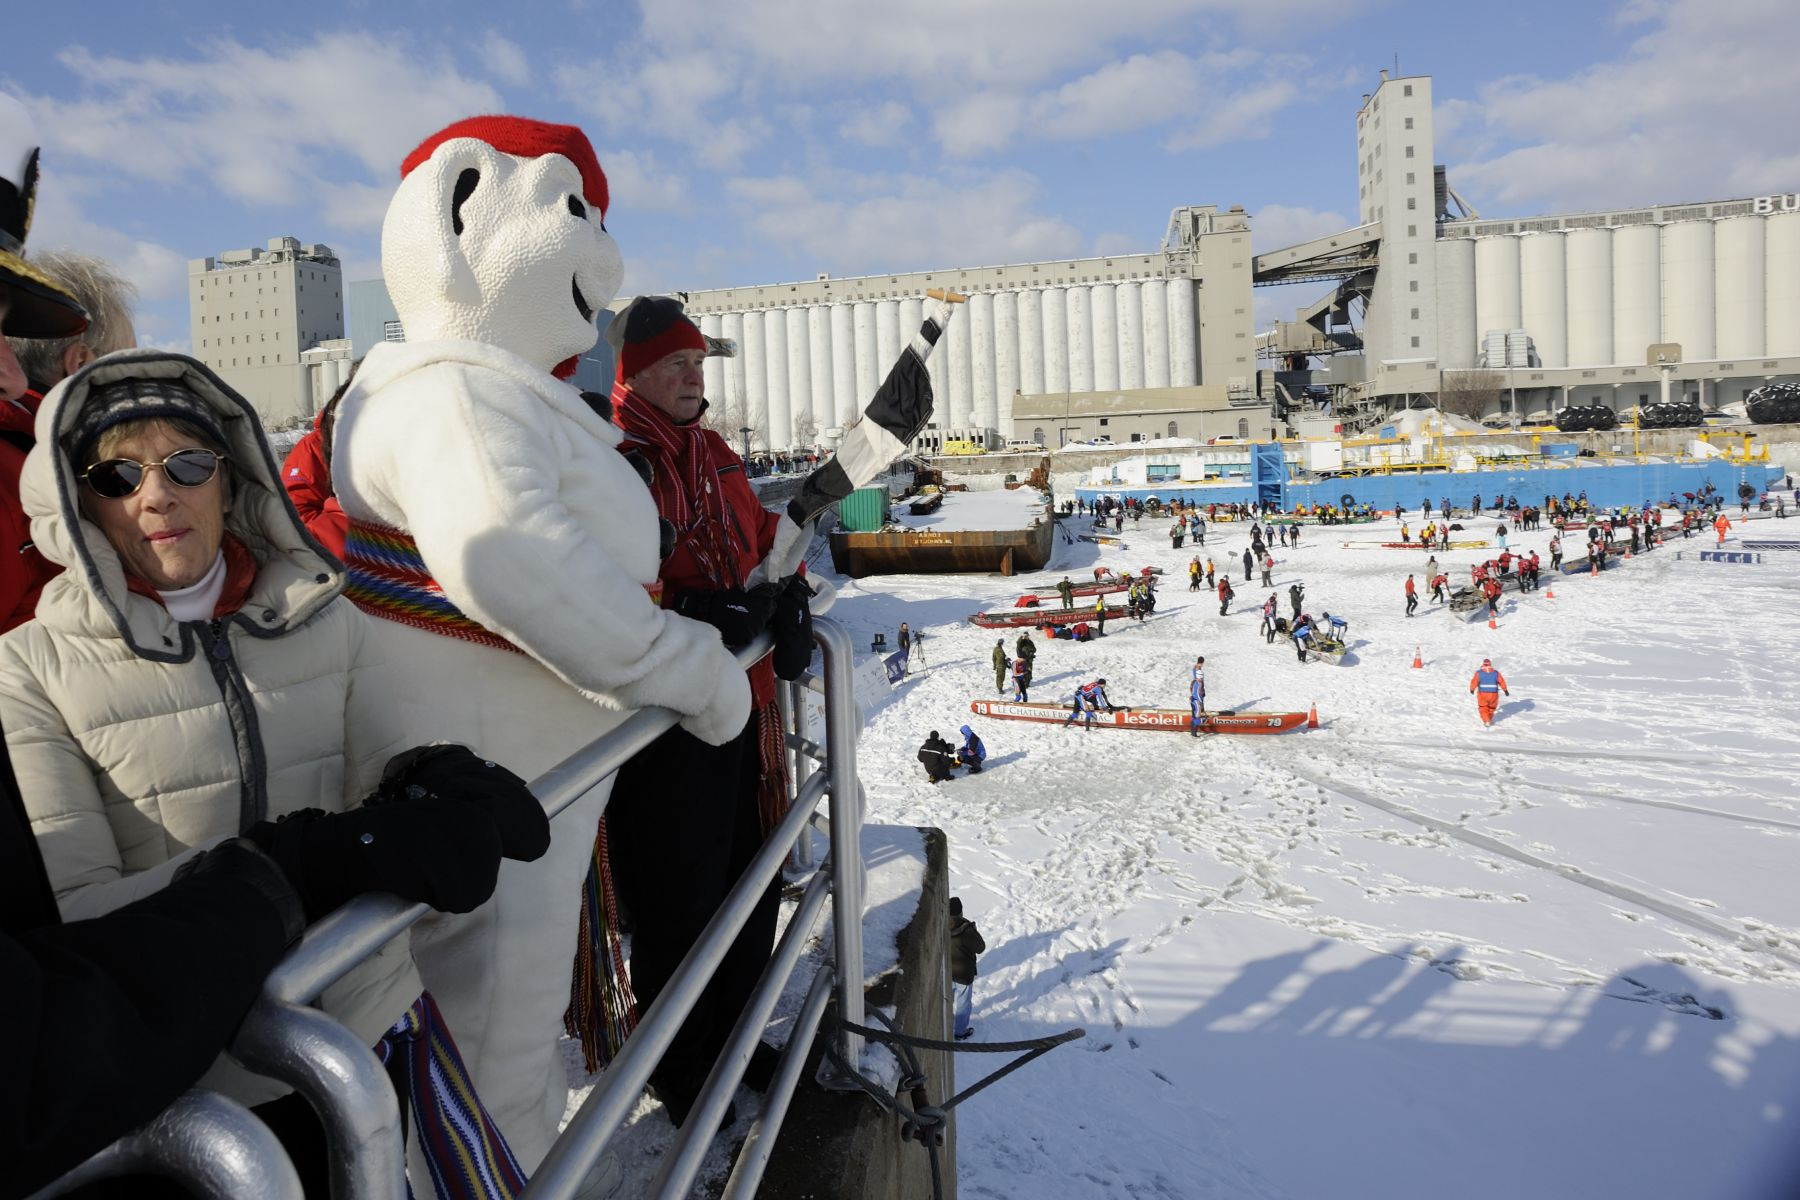 Their Excellencies and Bonhomme cheered on participants from the shore.